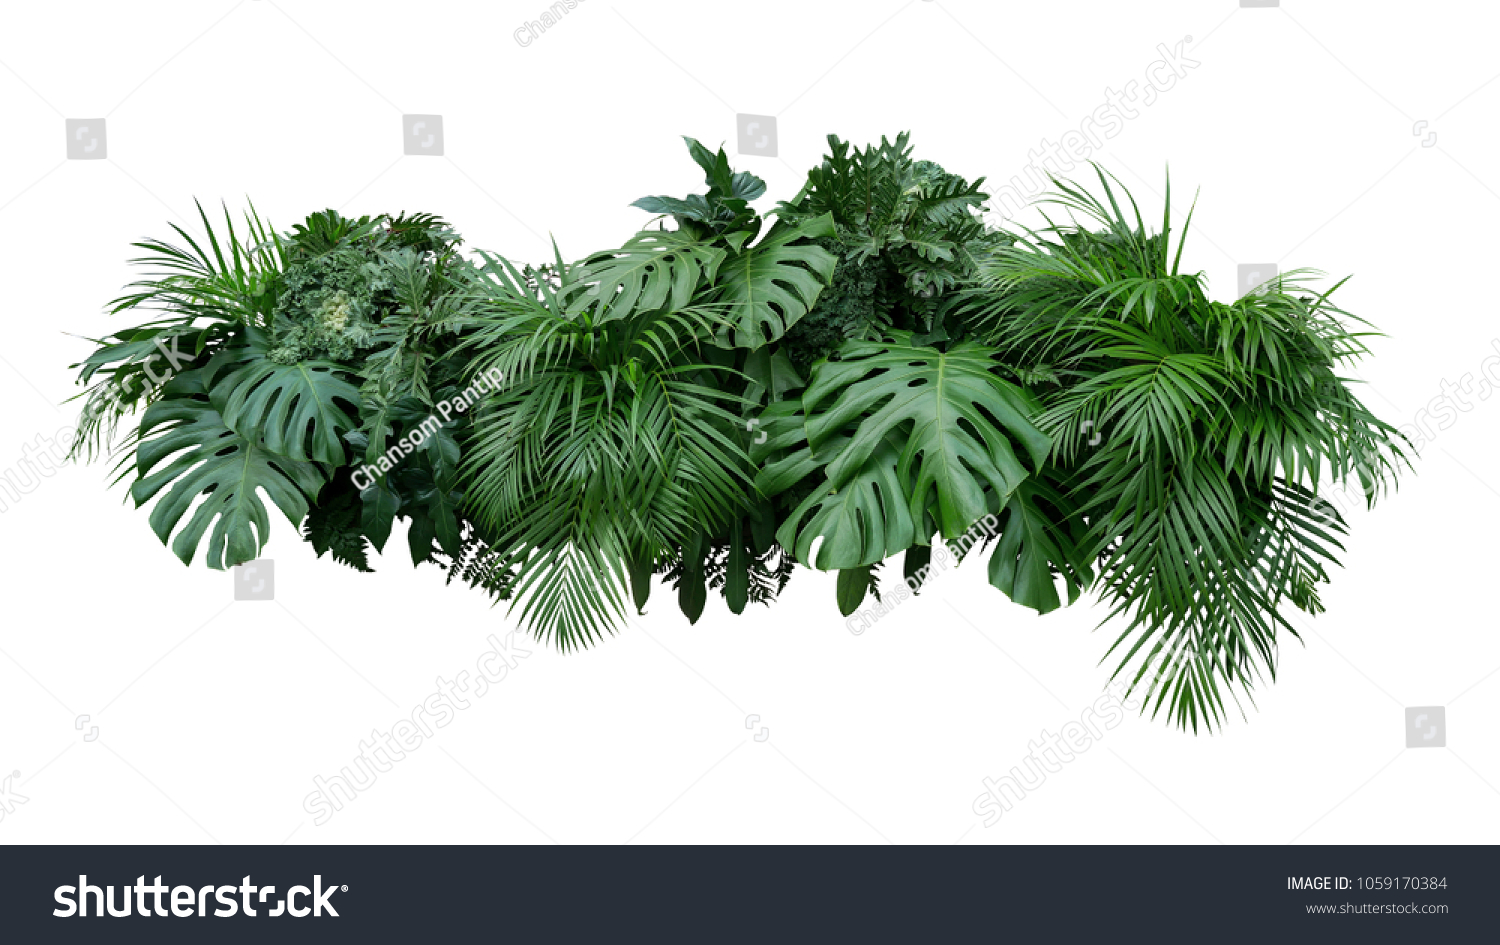 Tropical leaves foliage plant bush floral arrangement nature backdrop isolated on white background, clipping path included. #1059170384 - 123PhotoFree.com